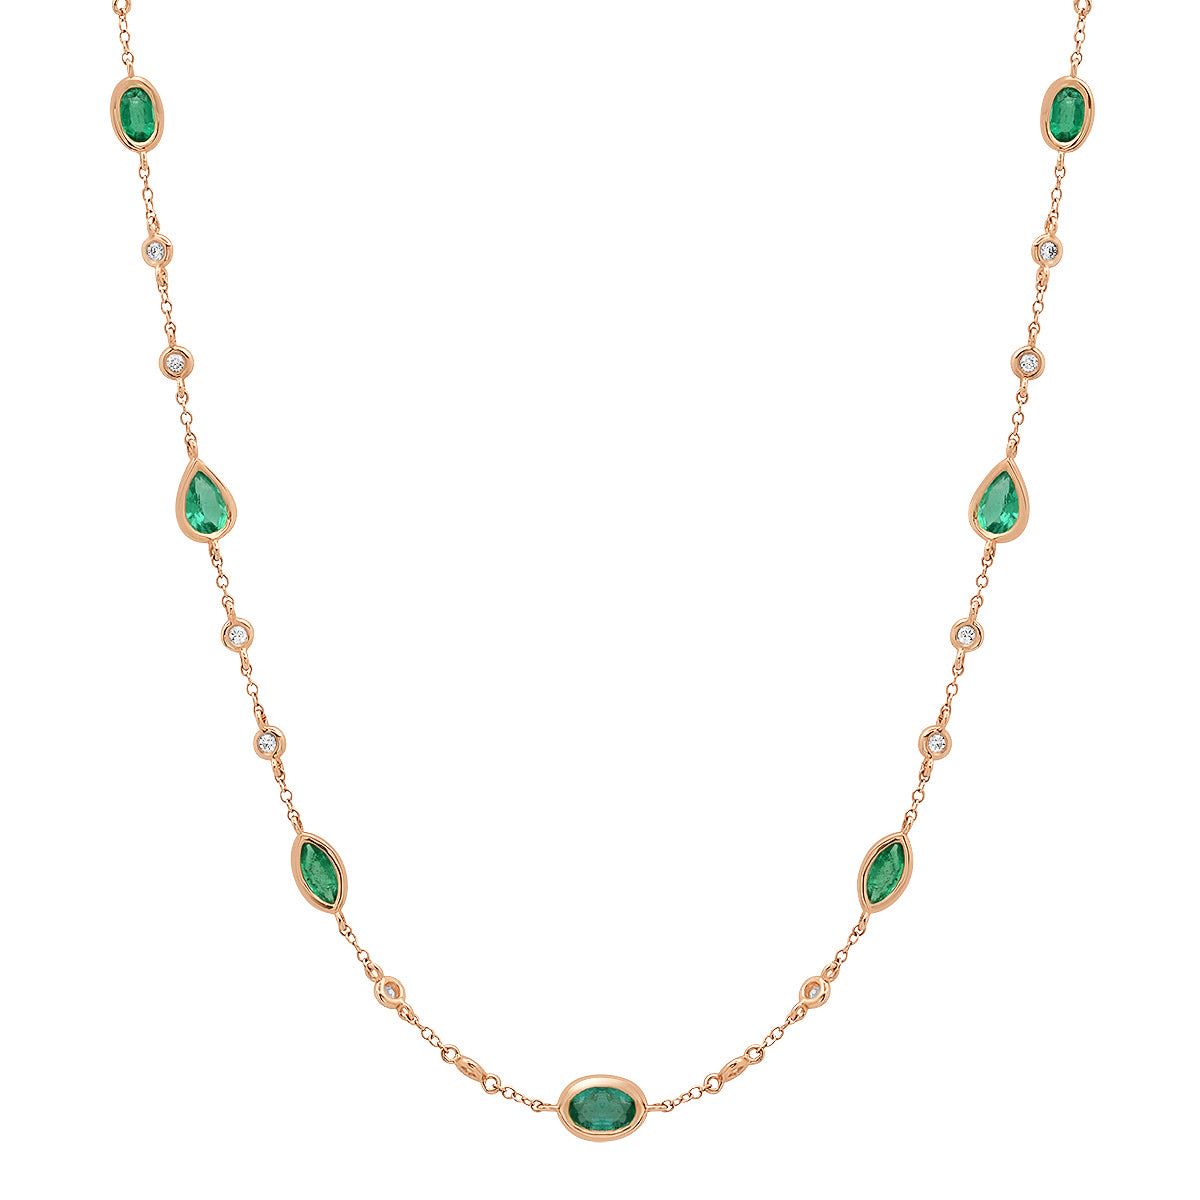 Bezel Set Emerald Shapes & Diamonds by the Yard Necklace